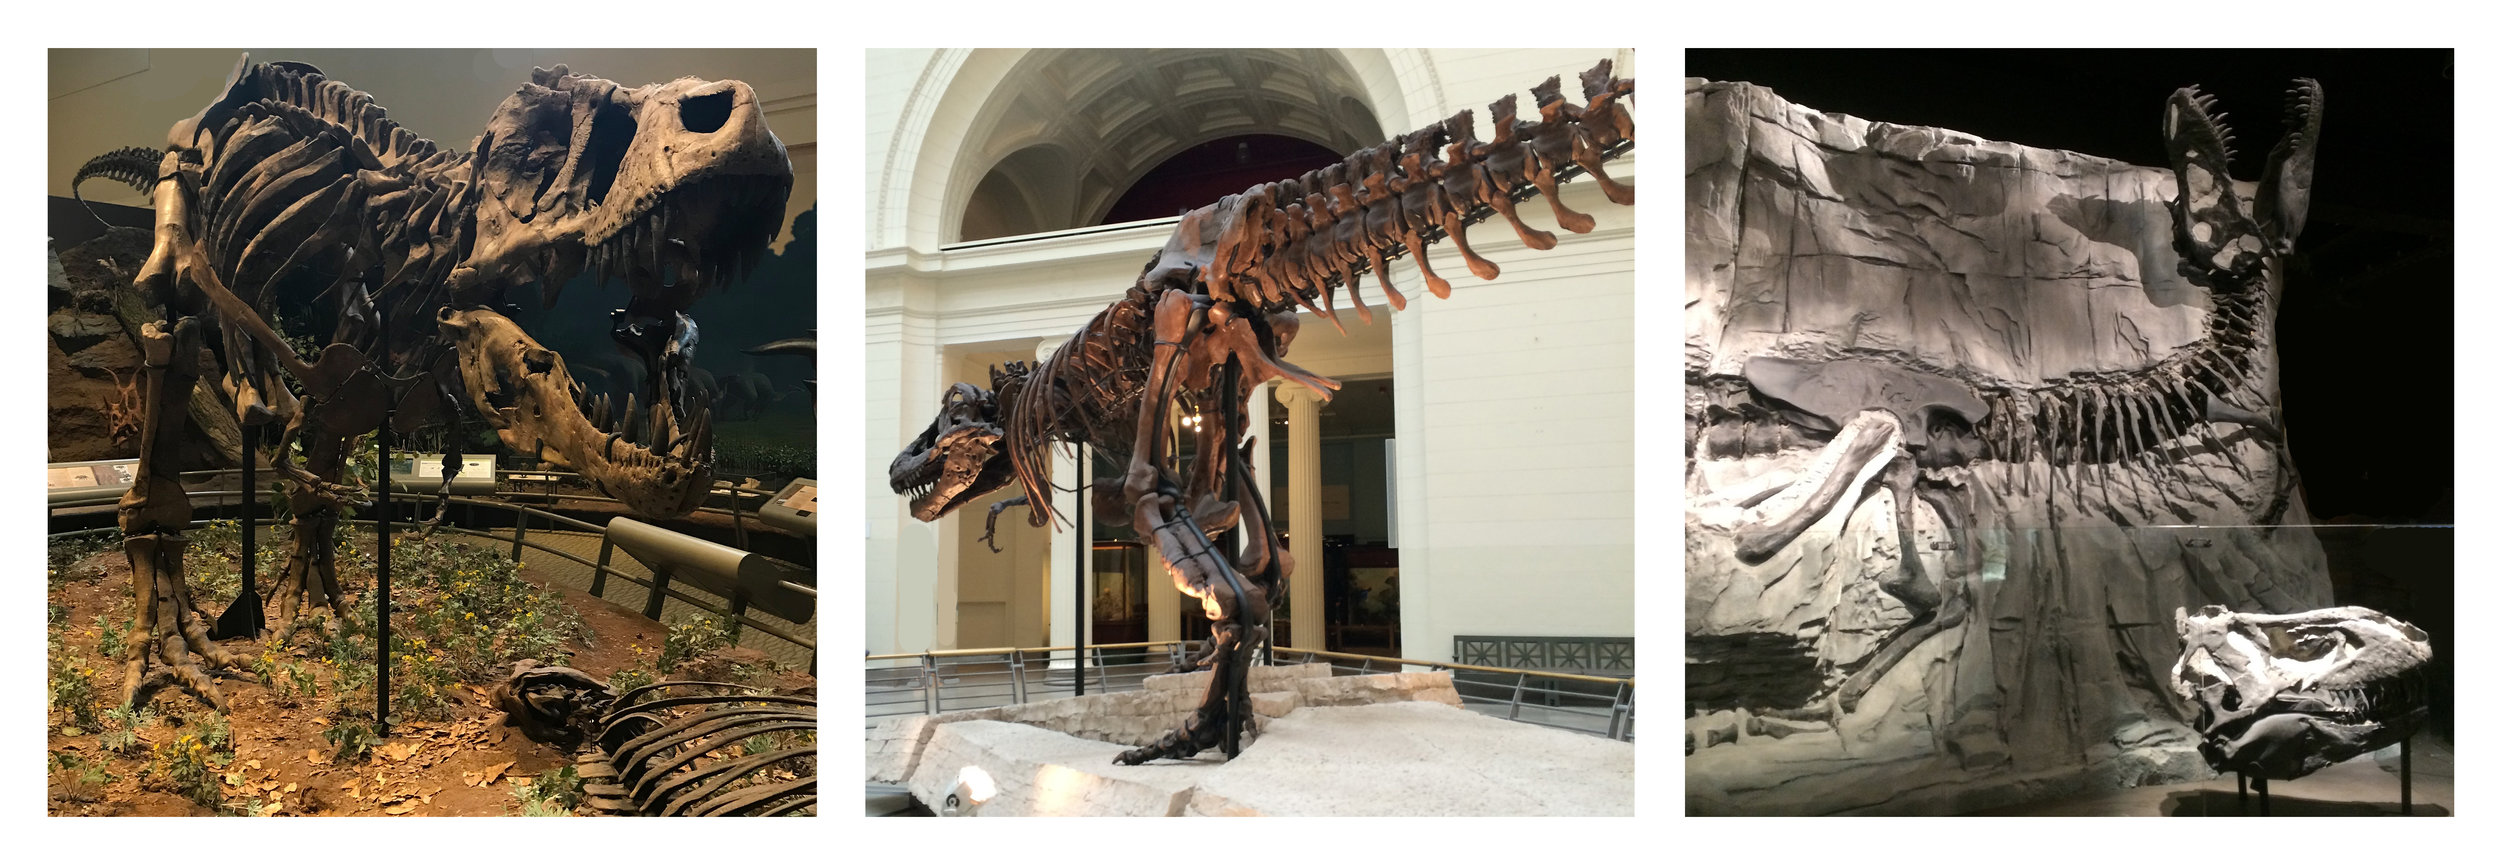 A bevy of beautiful  Tyrannosaurus rex ! On the left, the holotype of the species (CM 9380), on display at the Carnegie Museum of Natural History in Pittsburgh, Pennsylvania. In the middle, the specimen informally known as 'Sue' (FMNH PR 2081), on display at the Field Museum of Natural History in Chicago, Illinois. On the right, the specimen informally known as 'Black Beauty' (RTMP 81.6.1), on display at the Royal Tyrrell Museum of Palaeontology in Drumheller, Alberta.